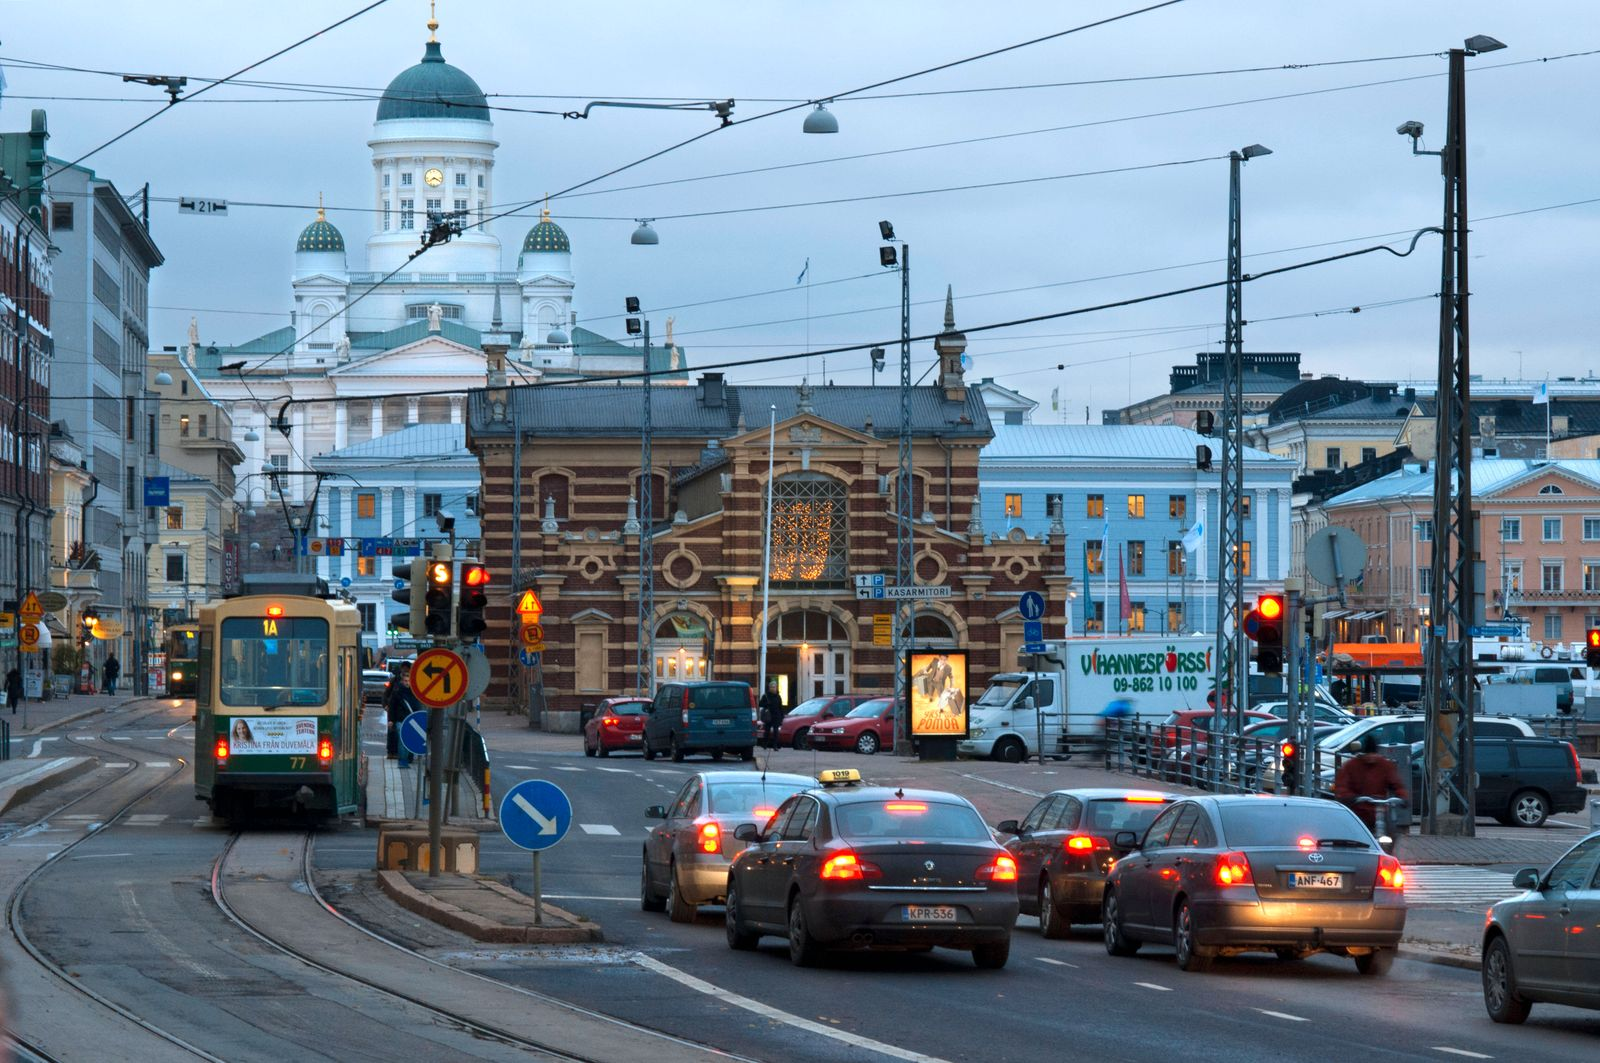 General view of the Helsinki city with the tram, market, and the Senaatintori Lutheran Cathedral from the Eteläranta str